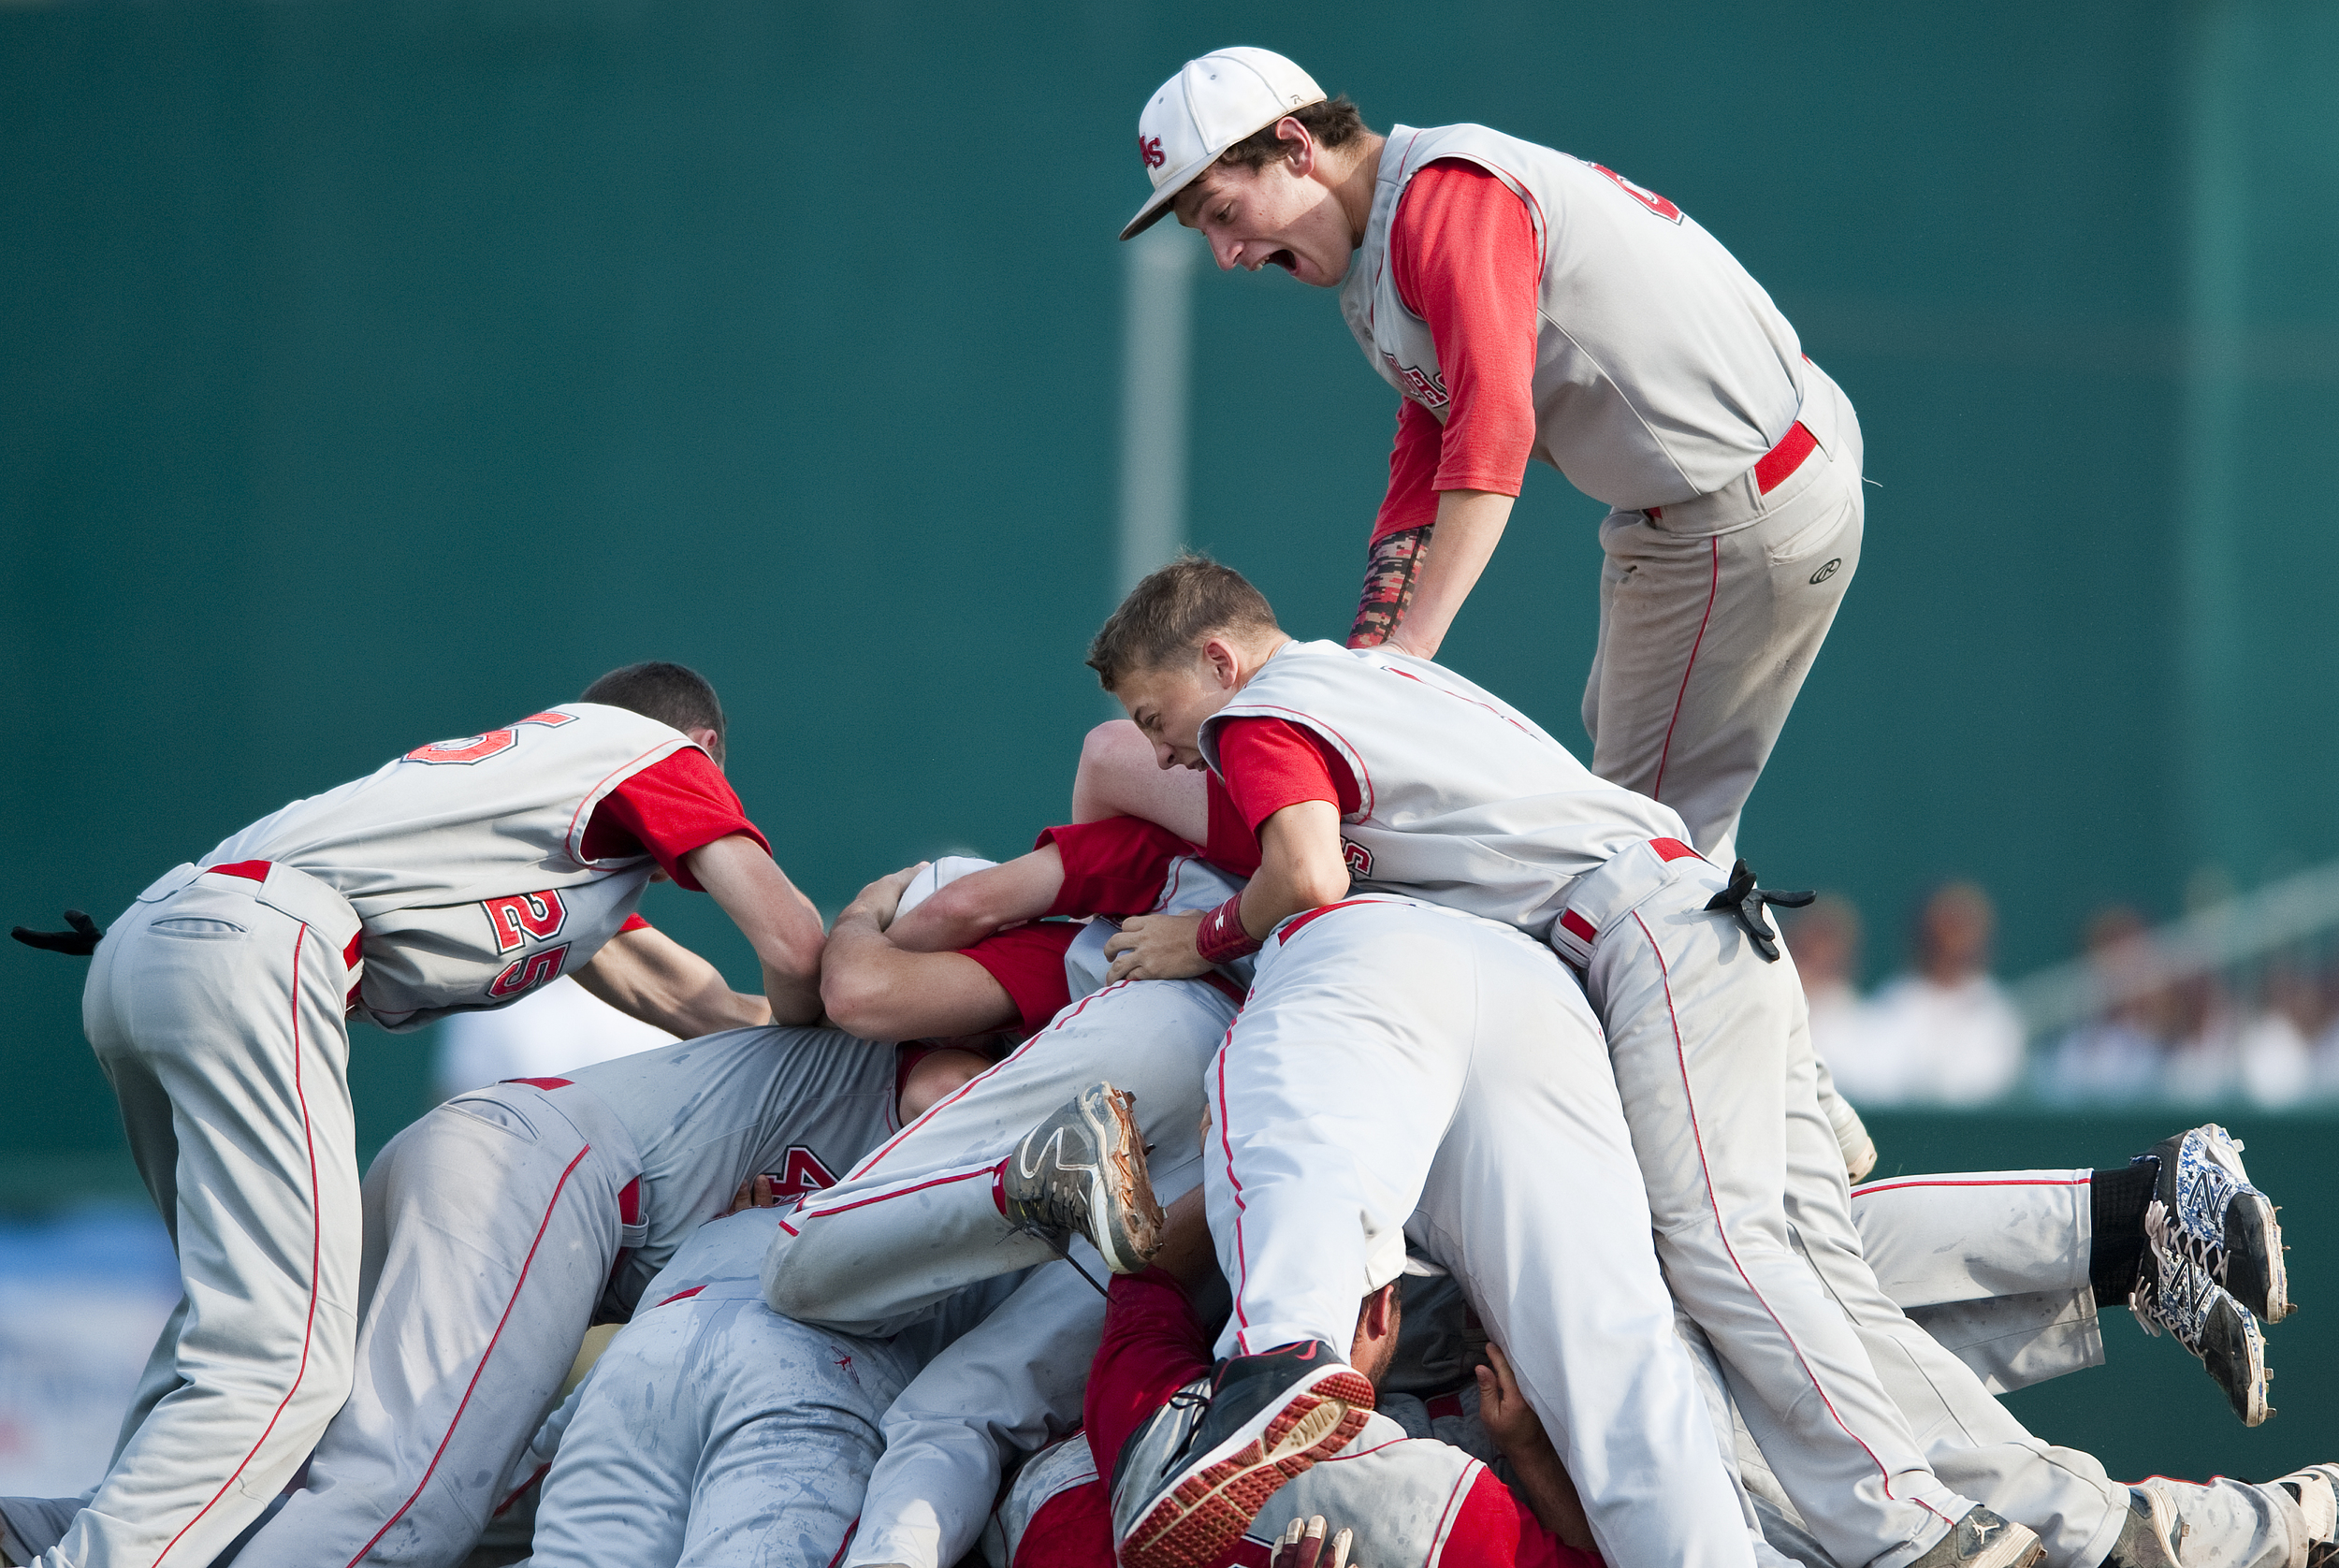 Neshannock's Jason Swope (top) celebrates with his team their victory over Neumann-Goretti in during the PIAA Class AA baseball title game at Penn State's Medlar Field at Lubano Park on Friday, June 12, 2015. Neshannock won 9-0.